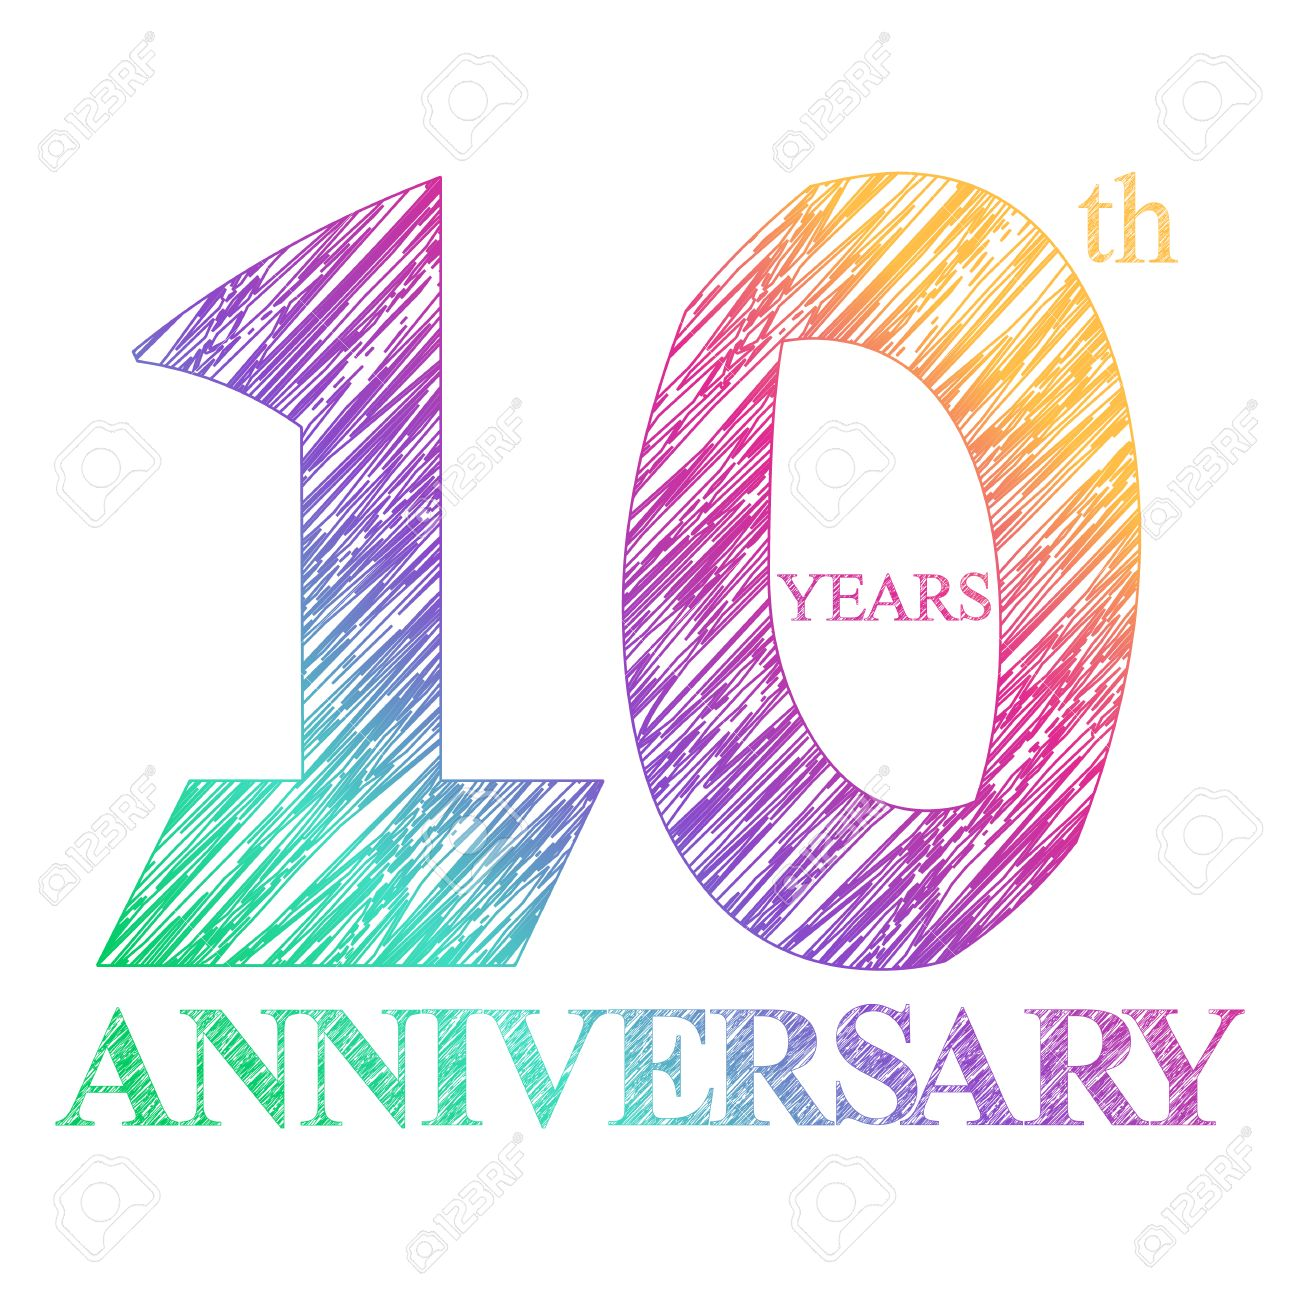 A Painted The Logo Of The 10th Anniversary With A Circle Number pertaining to Free Clip Art 10th Anniversary